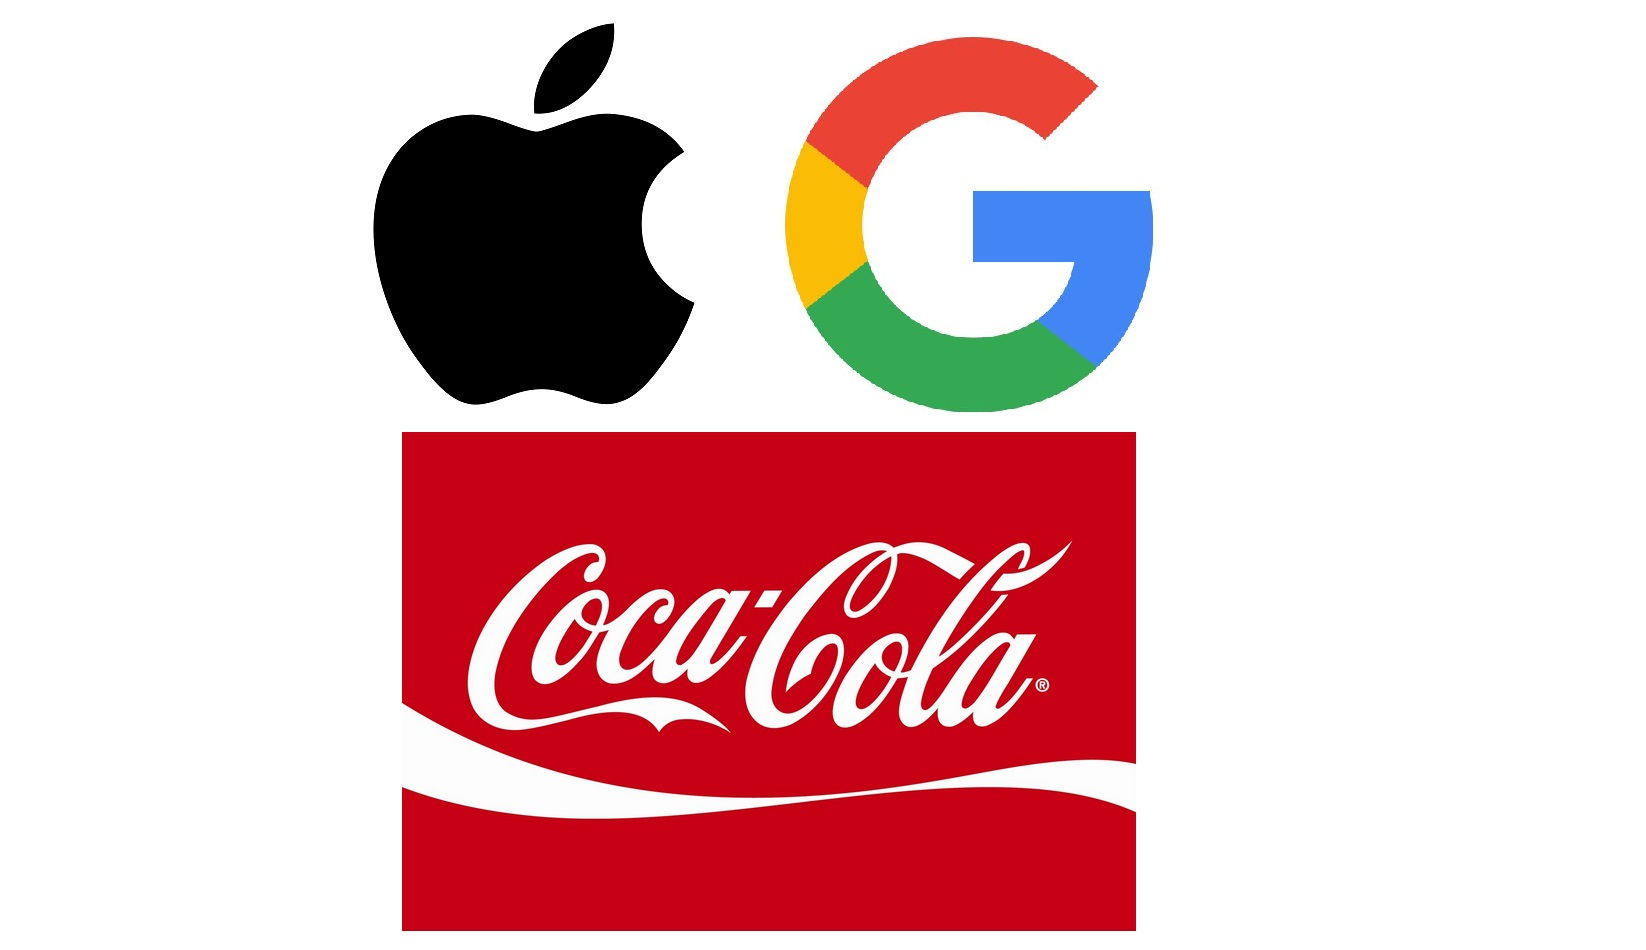 Apple Google Coca Cola